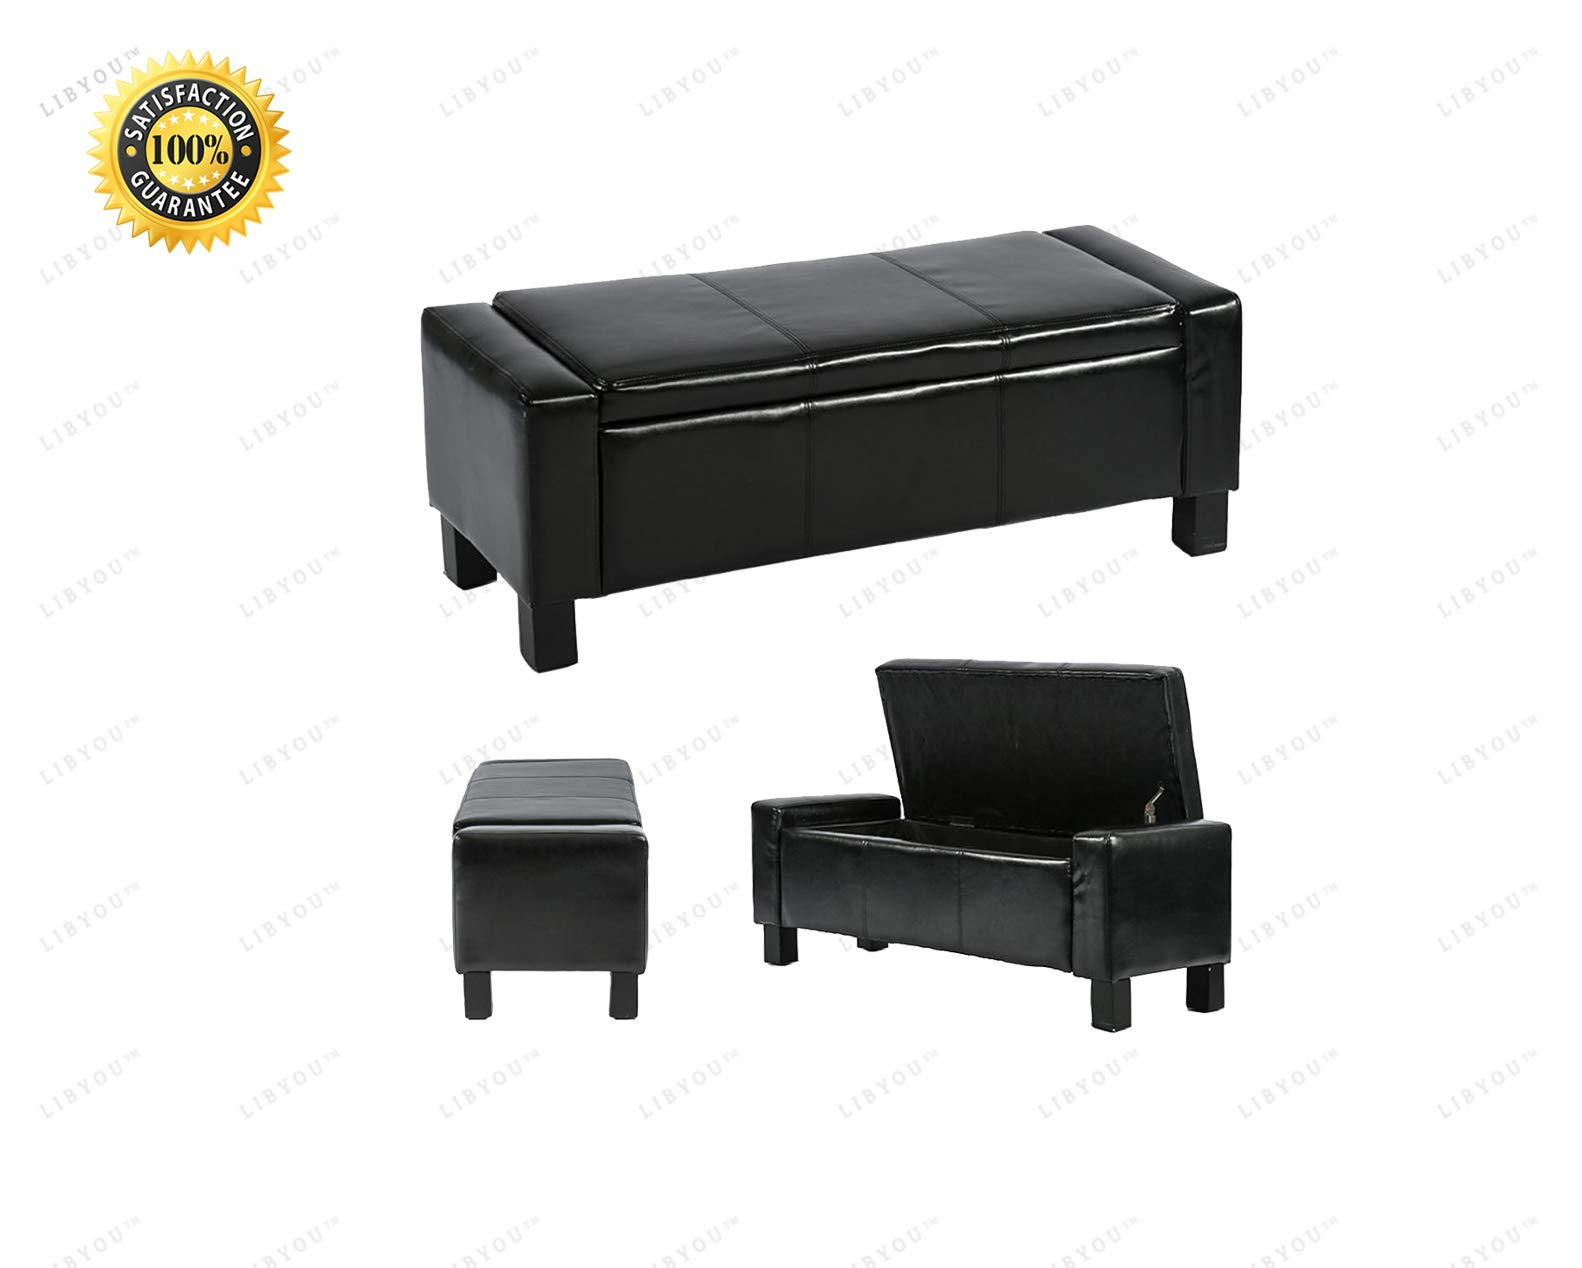 LIBYOU__Storage Ottoman Bench, Bedroom Bench,Leather Storage Ottoman,Faux Leather Ottoman,Folding Storage Bench,Ottoman Storage Bench,Ottoman, Footstool,Pouf,Leather Storage Ottoman, Storage Bench